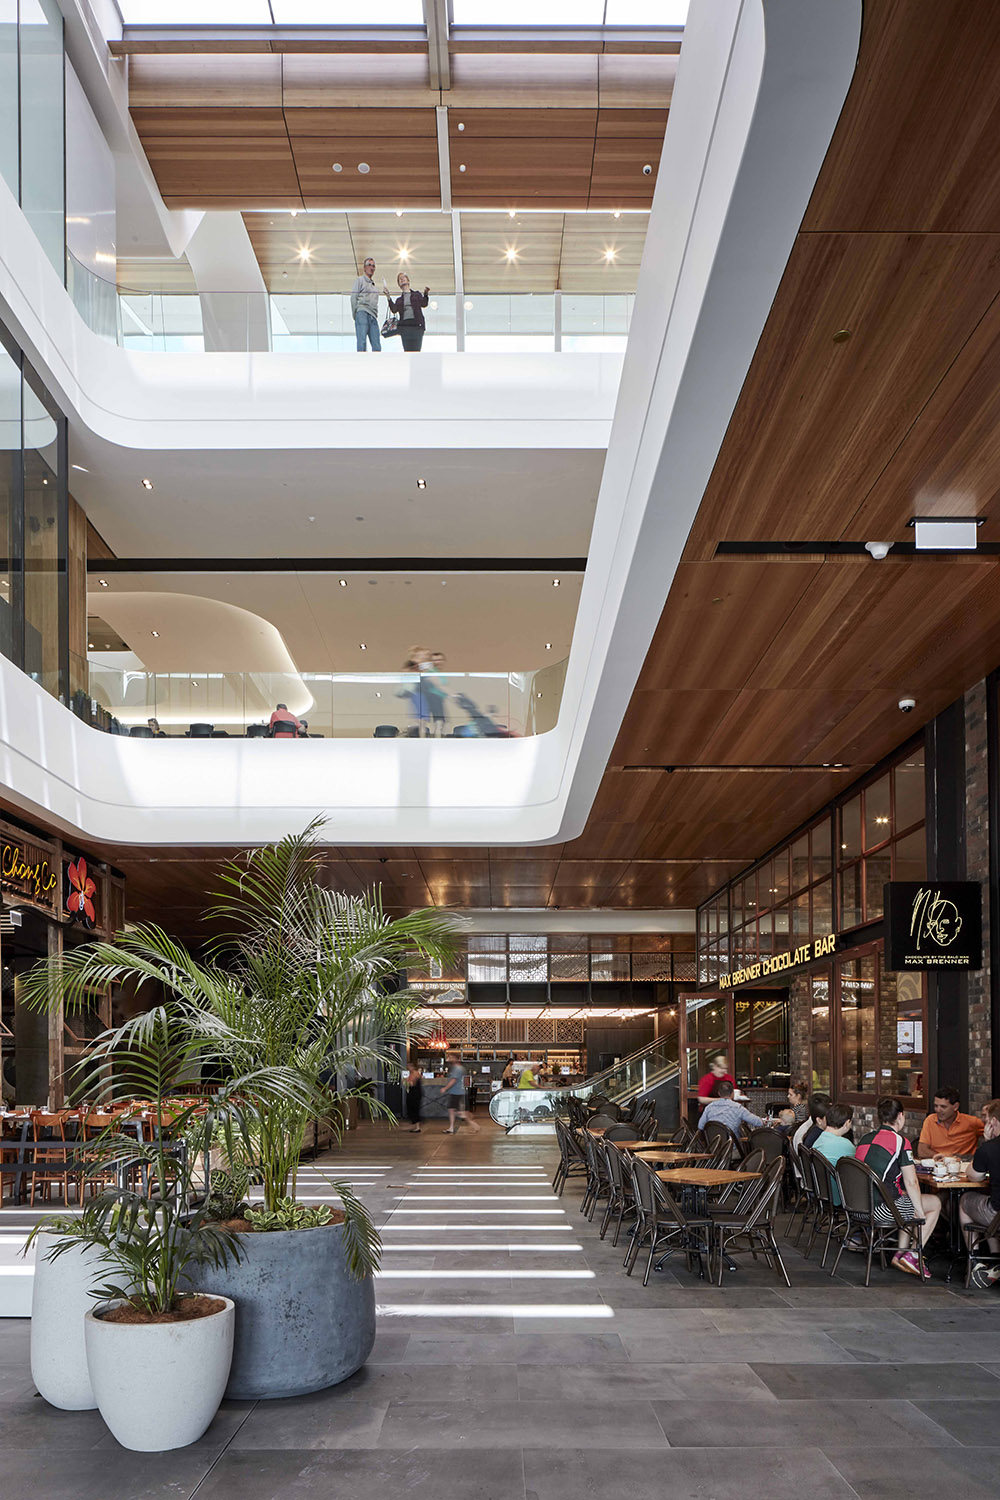 The internal retail environments are akin to arcades and gallerias, infused with natural light and connected to the surrounding city. Christopher Frederick Jones